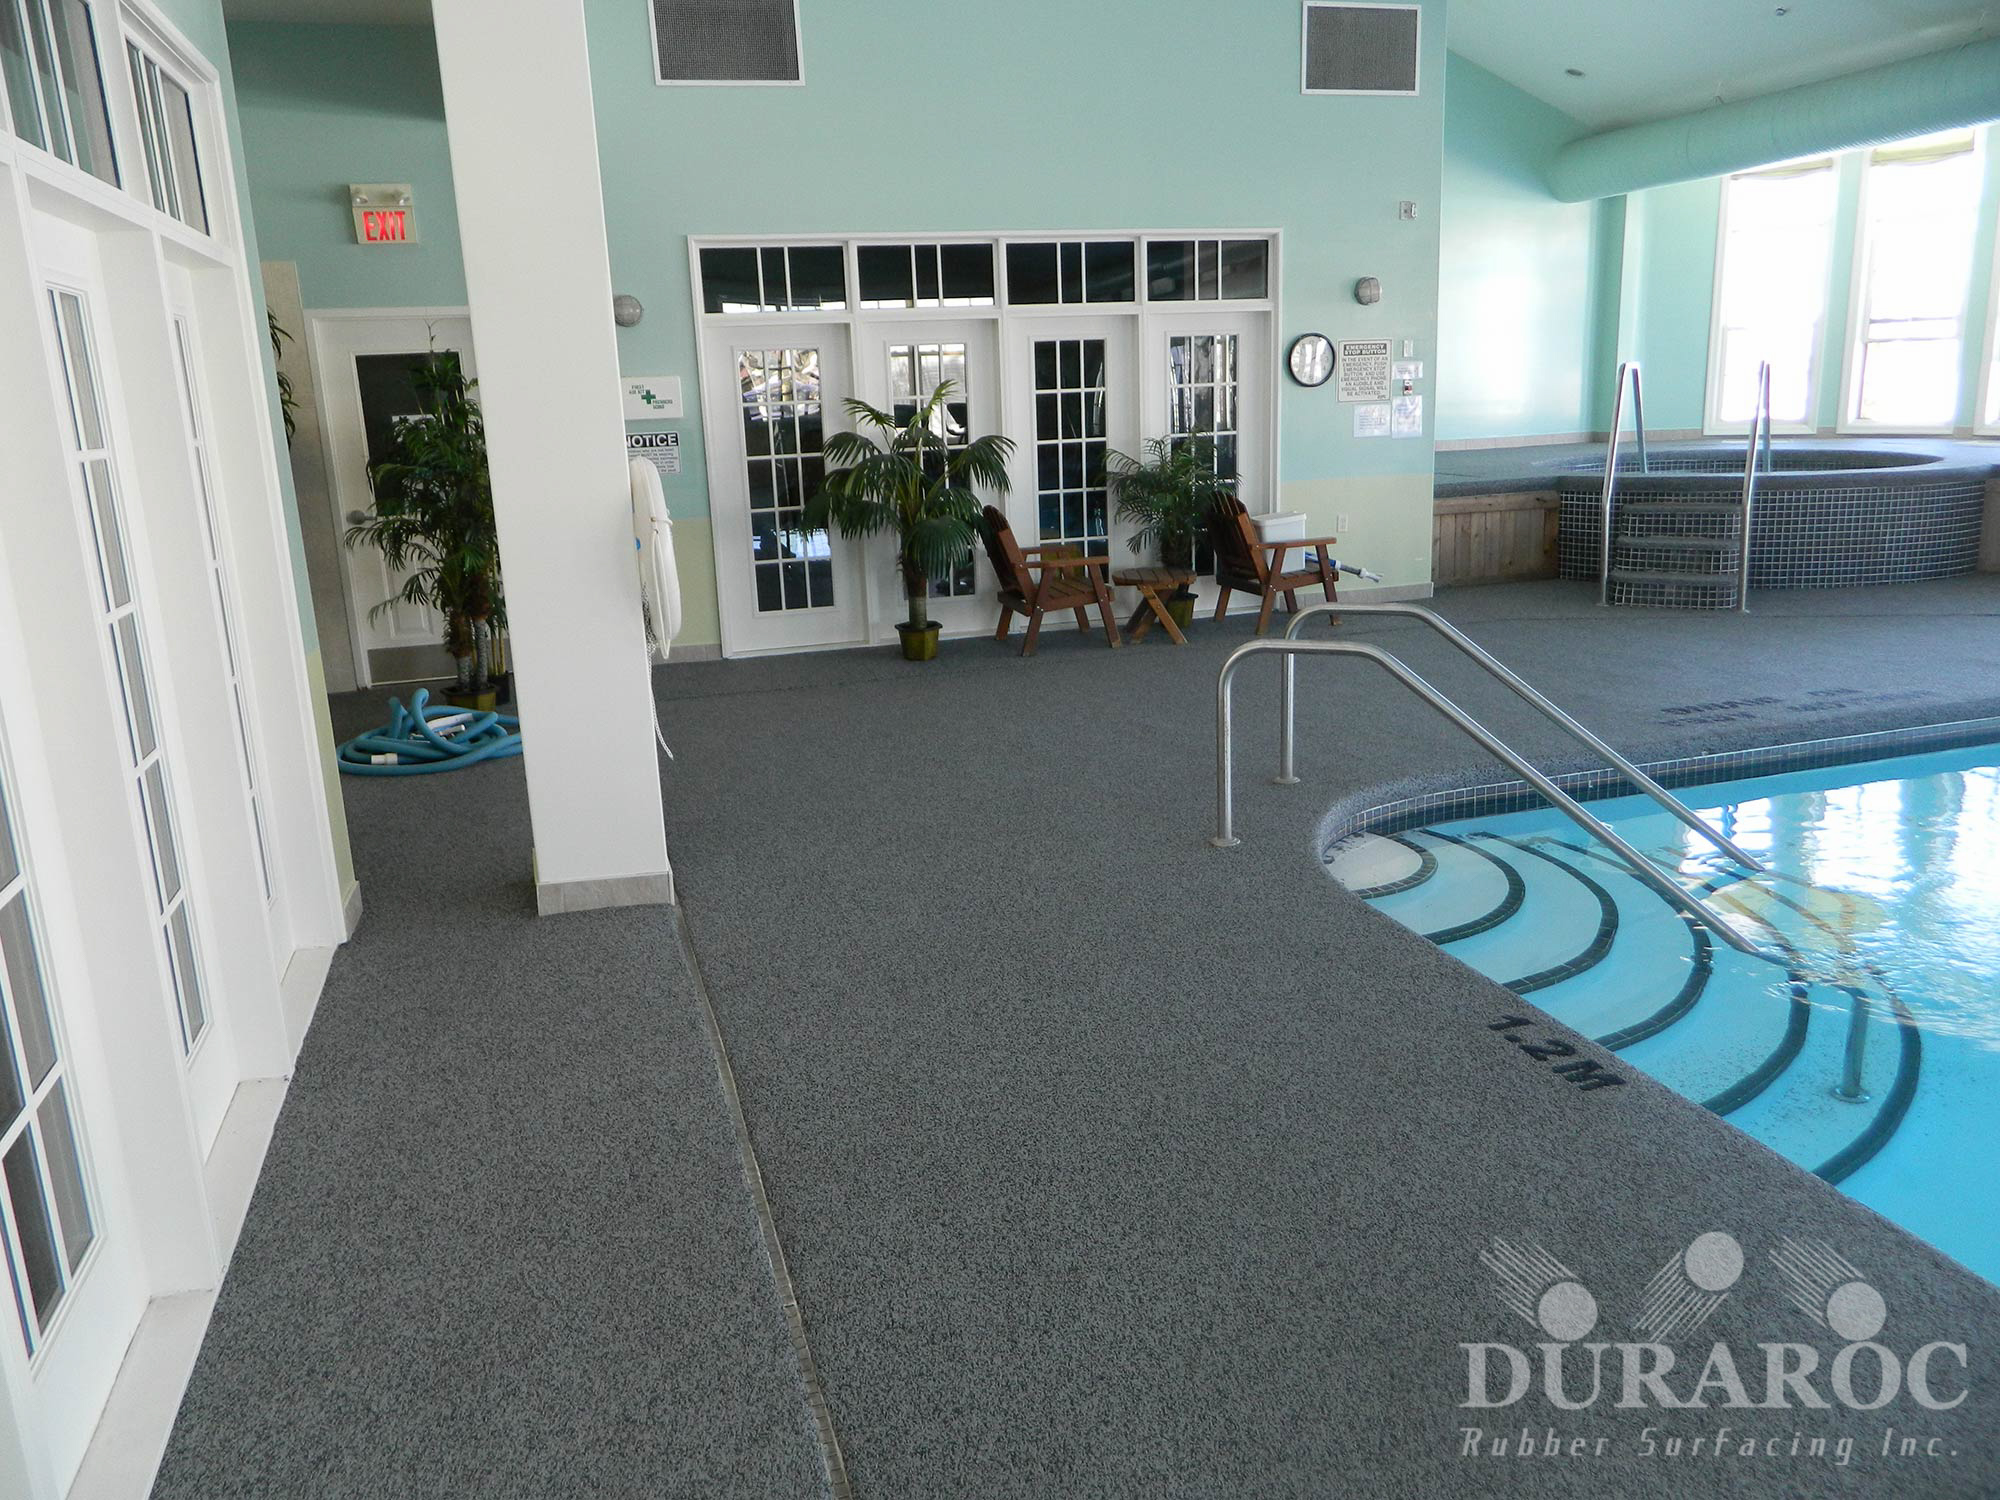 Indoor pool with Duraroc rubberized surface